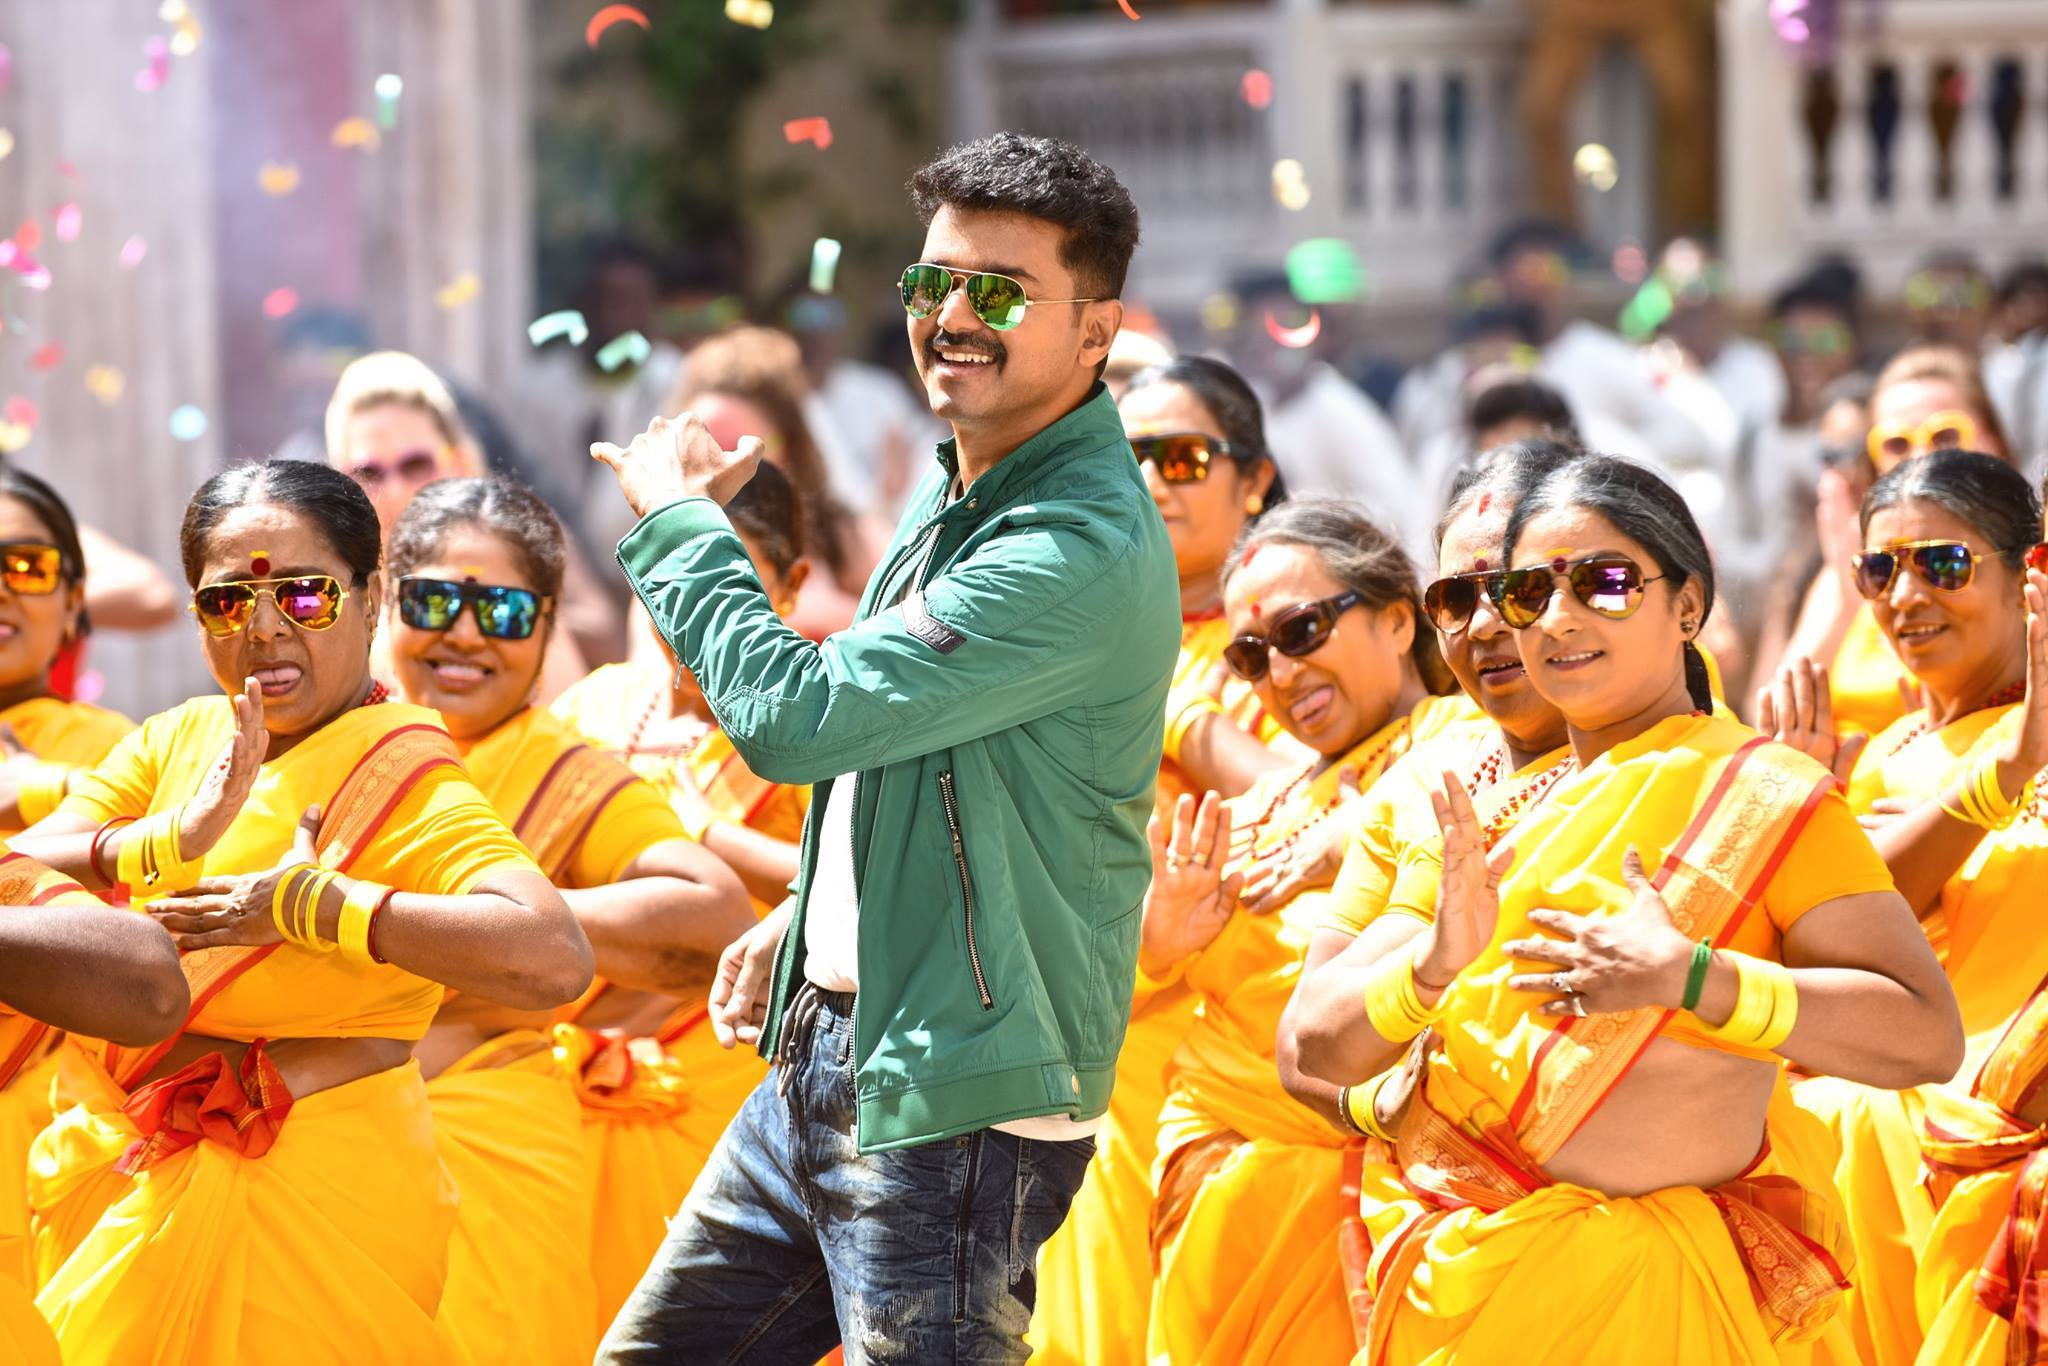 Theri, Vijay, Theri Teaser Record, News, Atlee